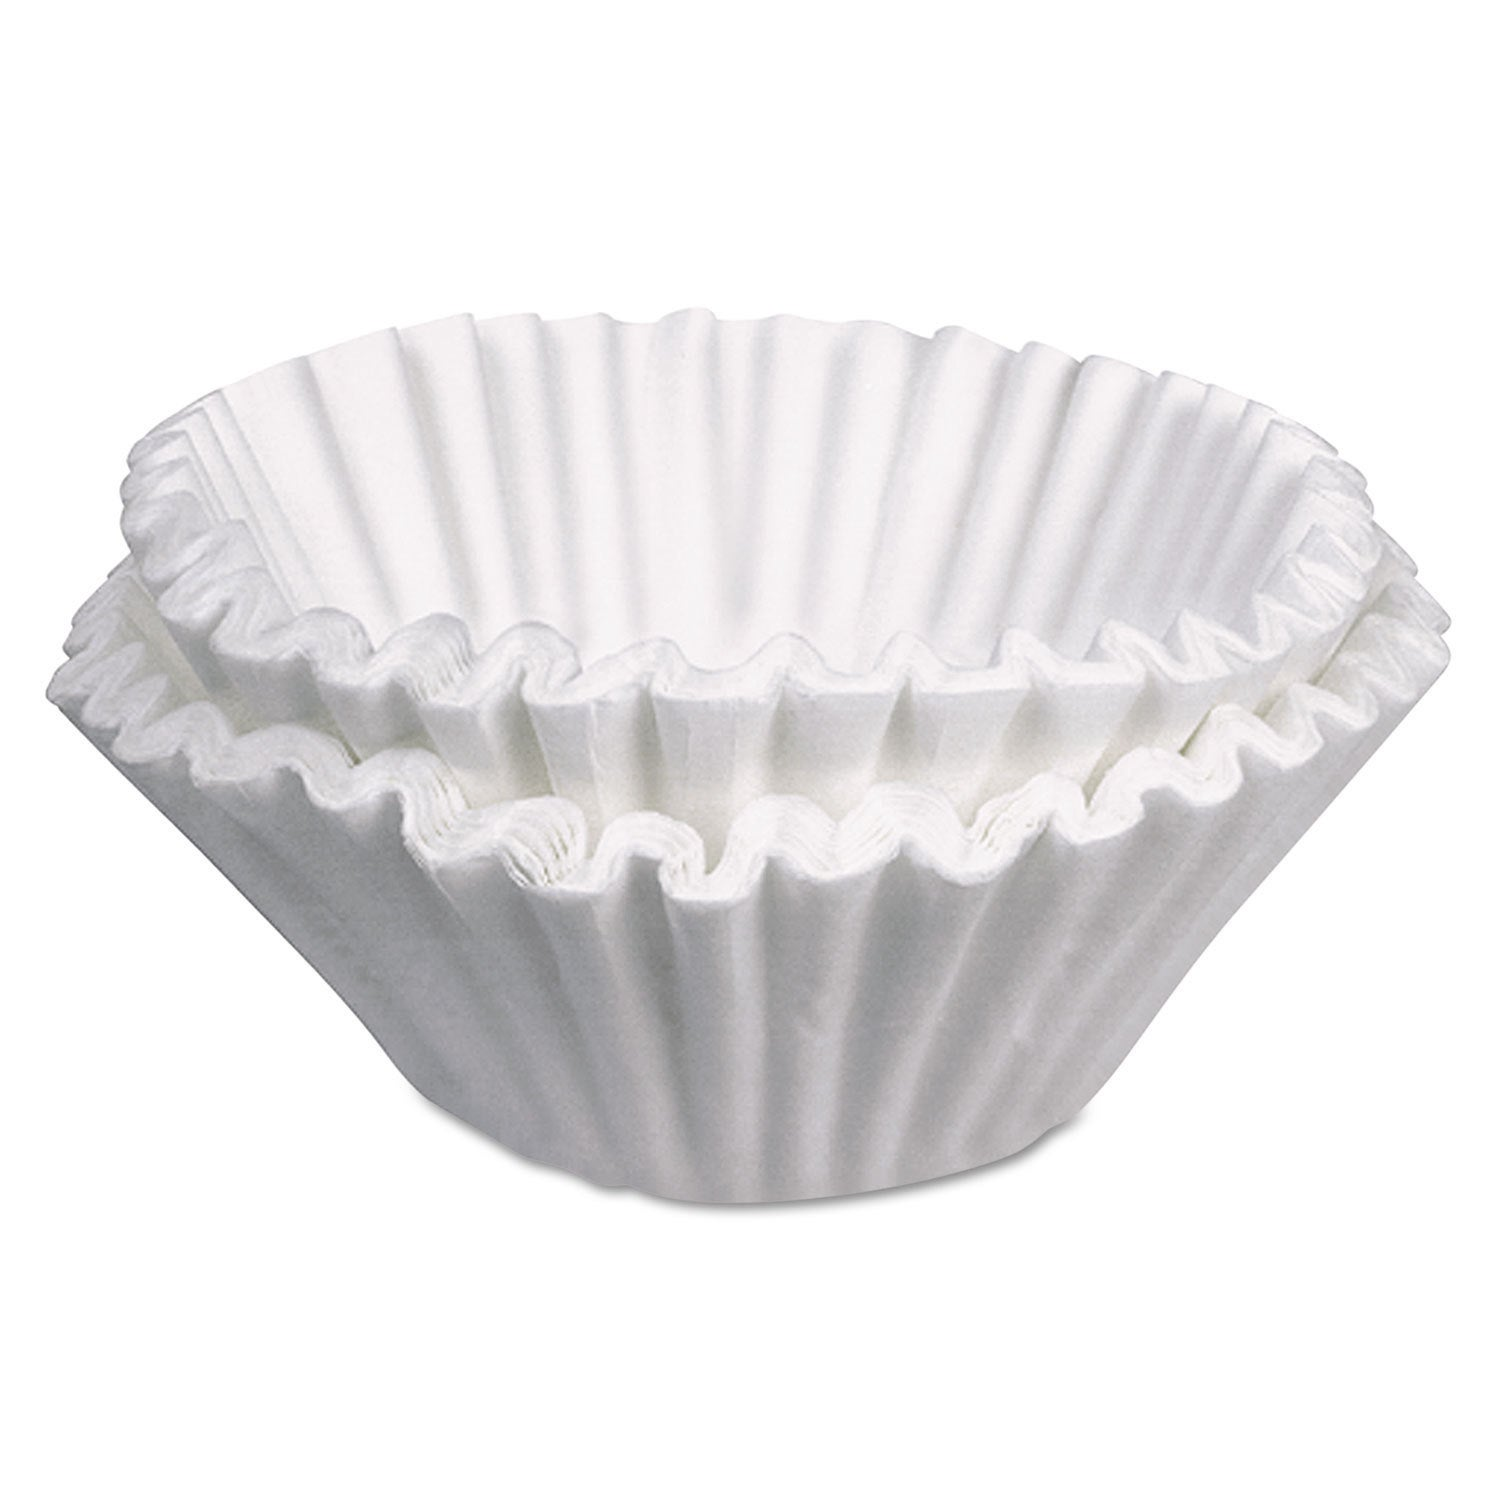 BUNN Commercial Coffee Filters 6 Gallon Urn Style 252/Pac...